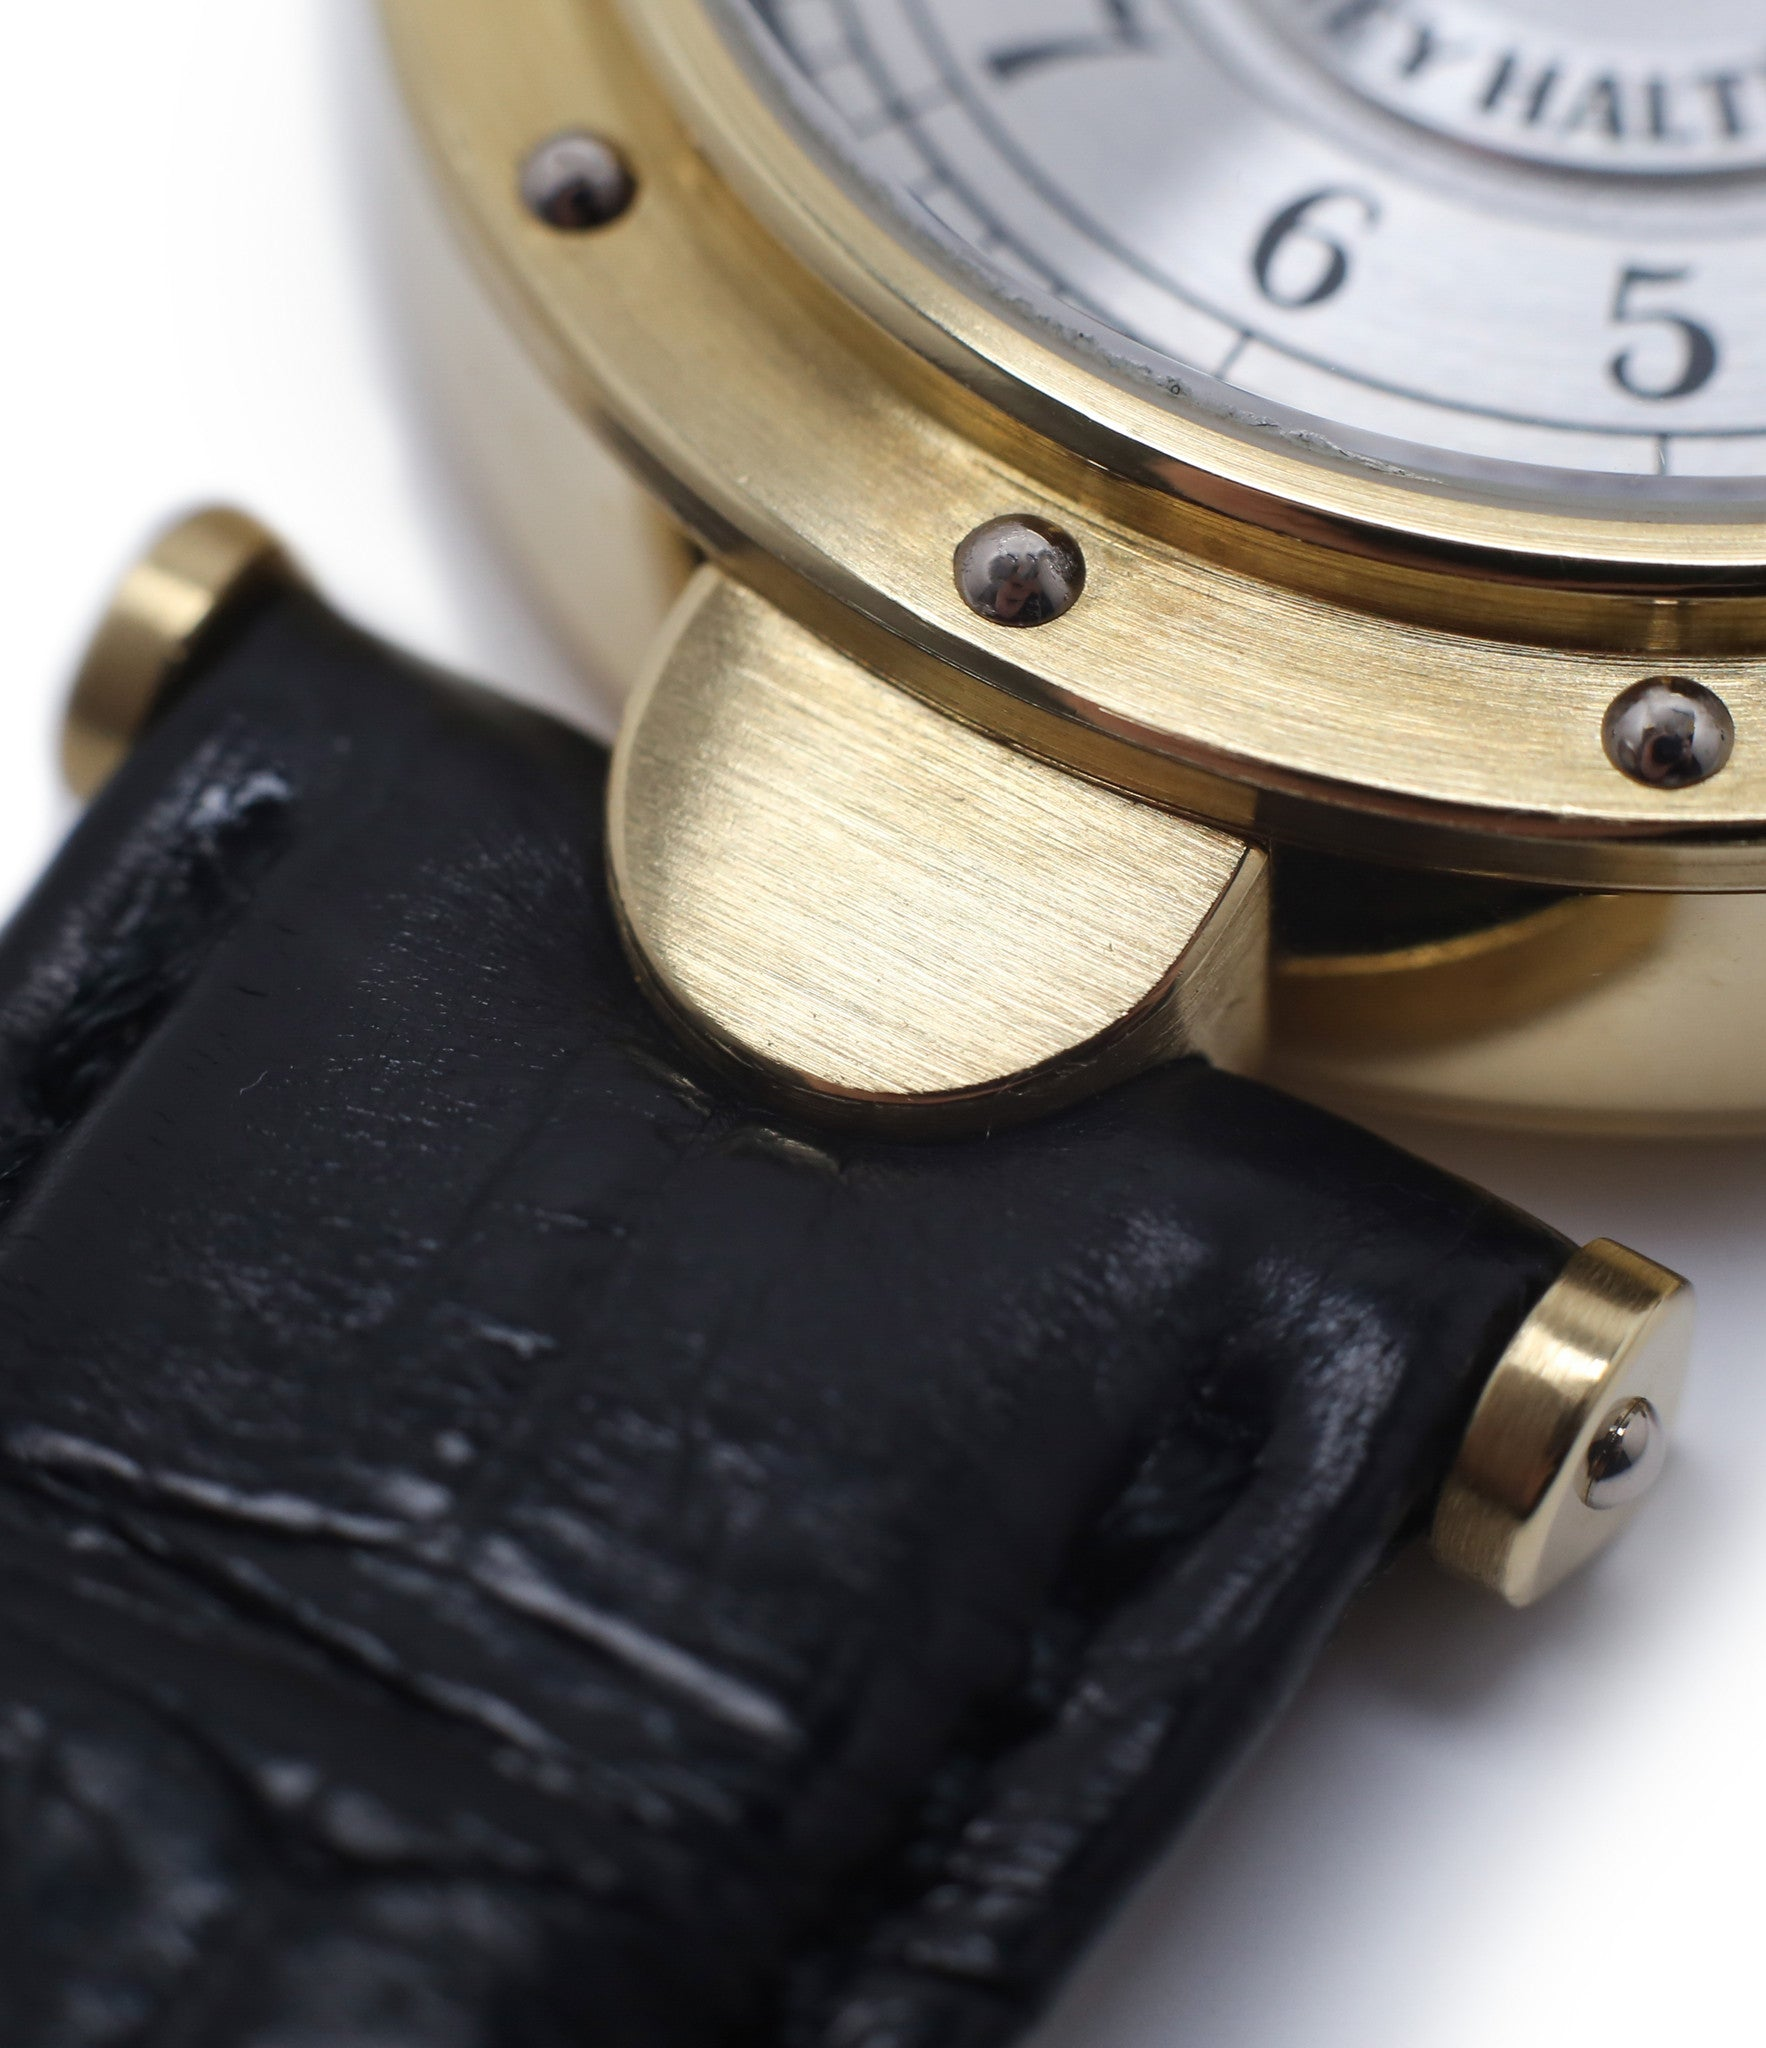 lugs buy Vianney Halter Classic yellow gold time-only dress watch at A Collected Man the approve seller of independent watchmakers